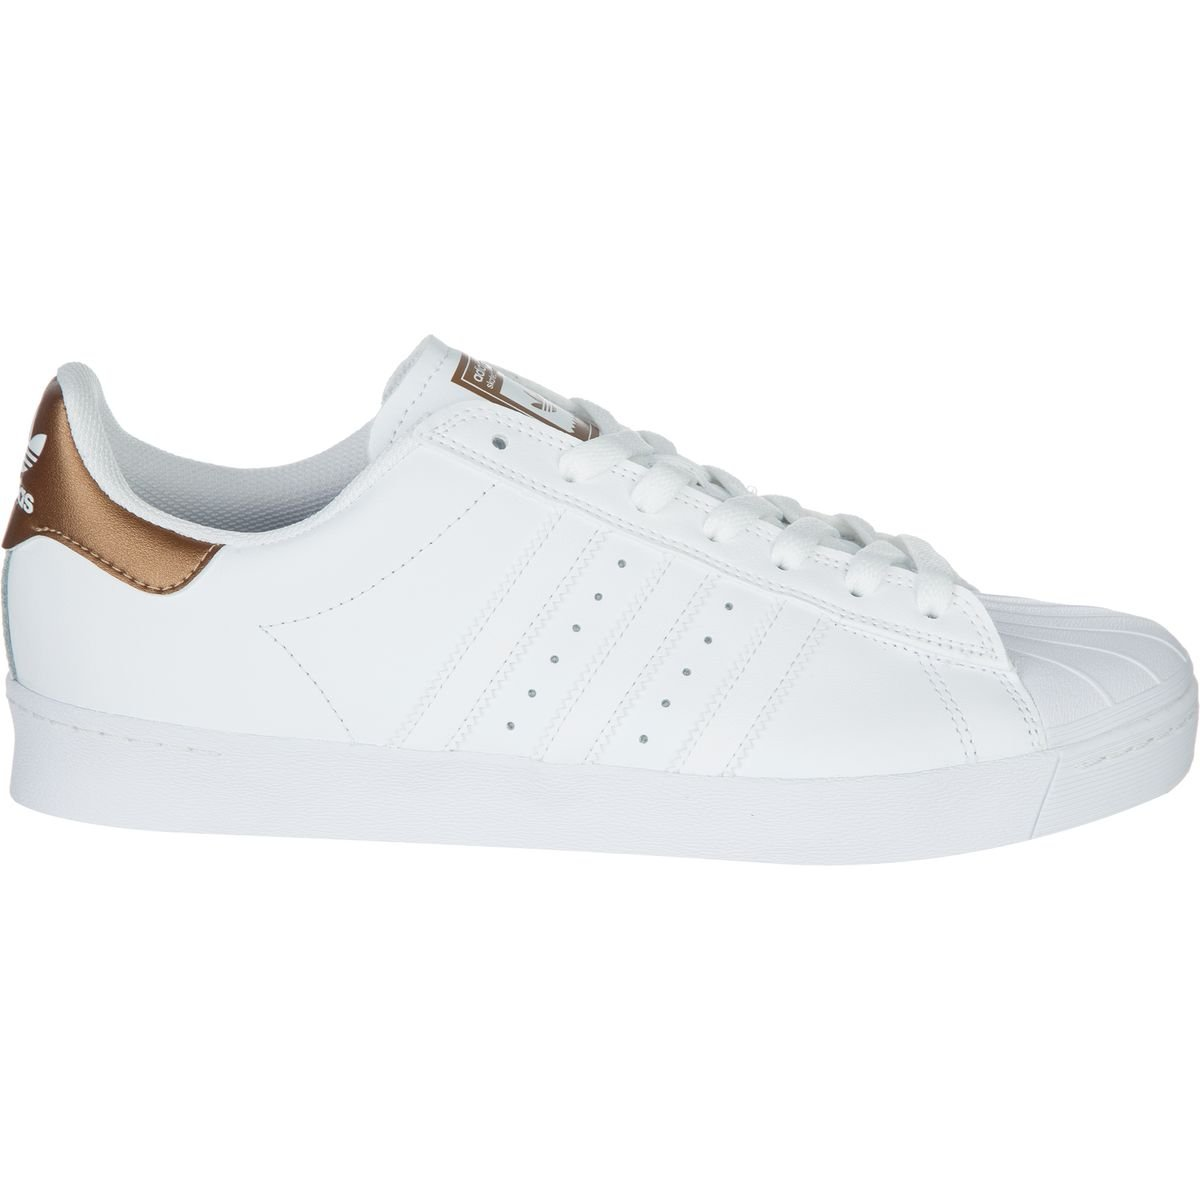 adidas Originals Men's Superstar Vulc Adv Shoes B01LYJP7EP 9.5 D(M) US|Ftwwht/Coppmt/Ftwwht